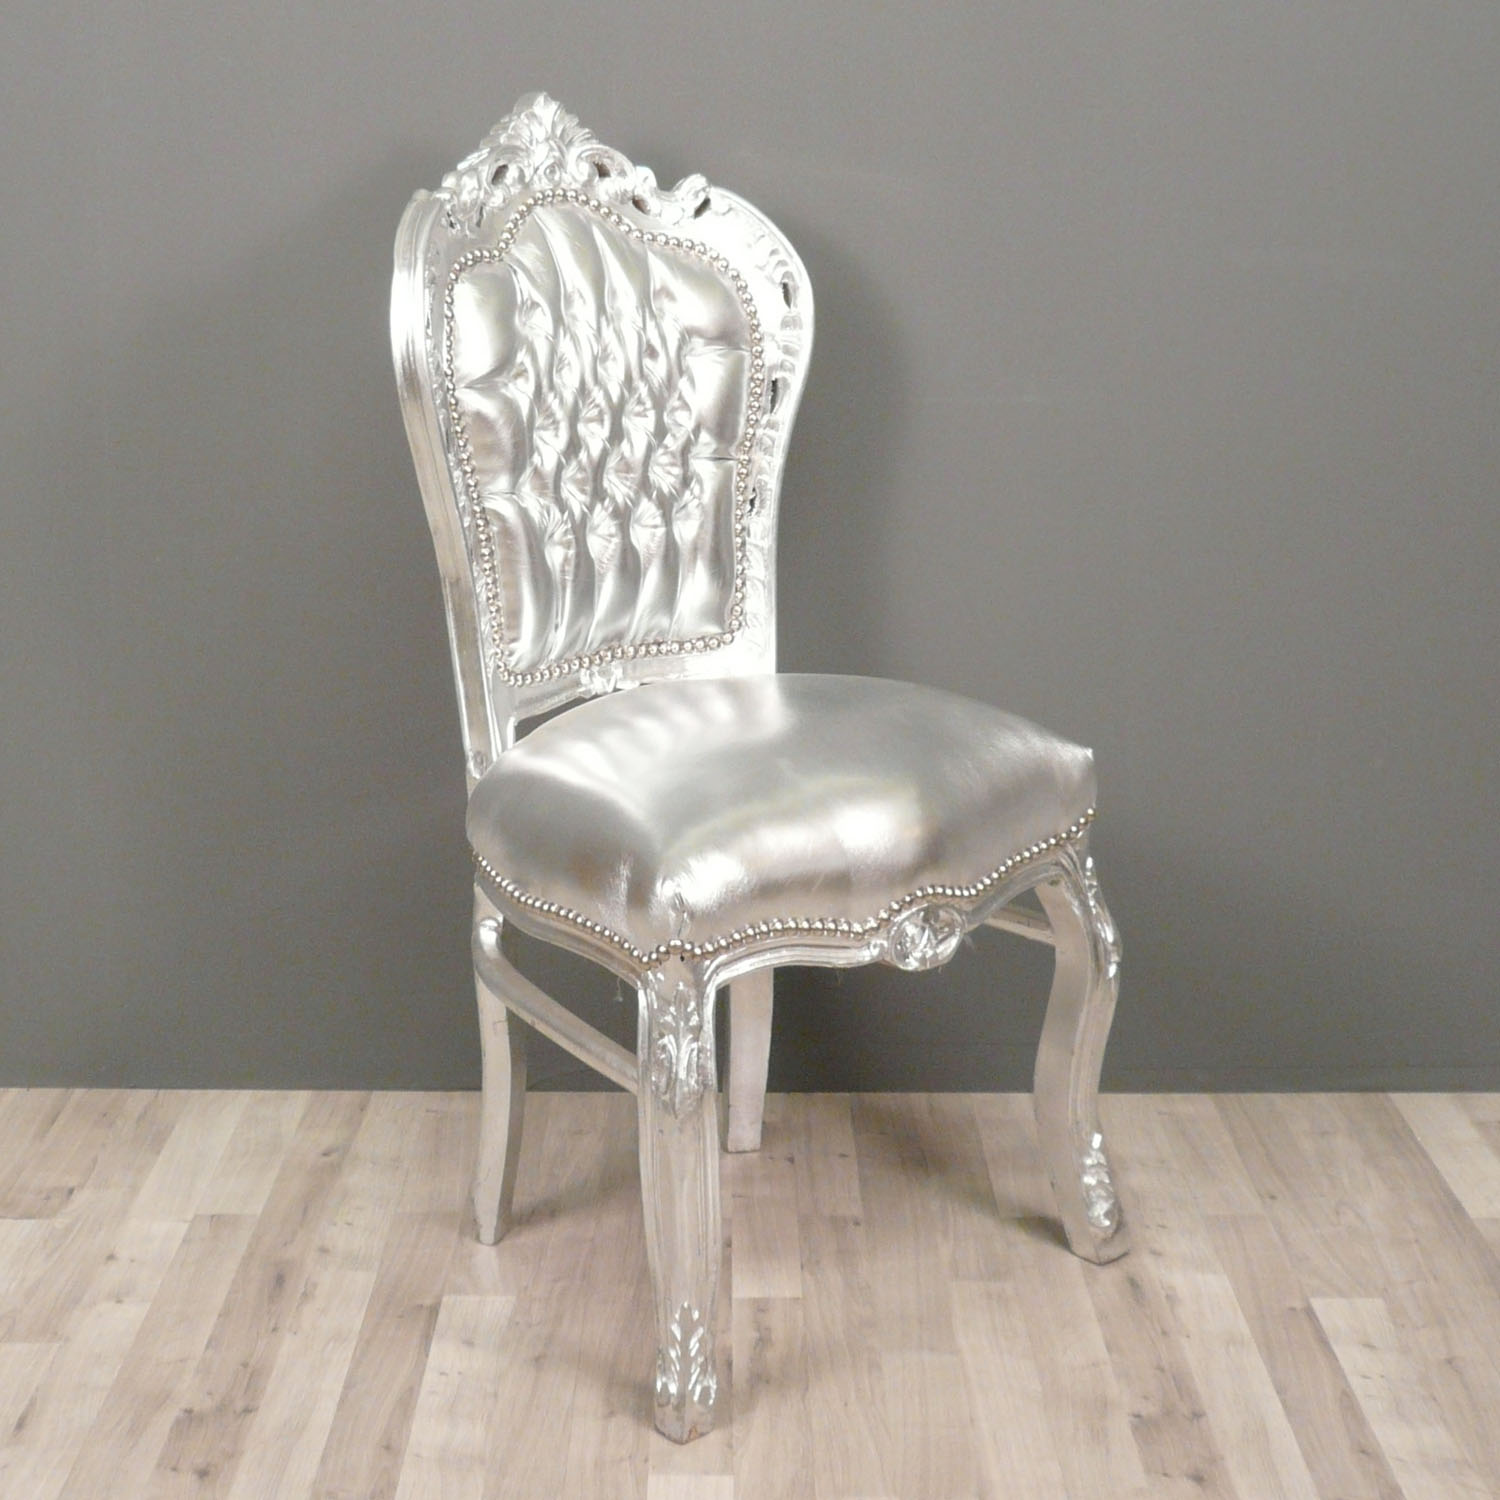 Baroque Chair Silver Tiffany Lamps Bronze Statues